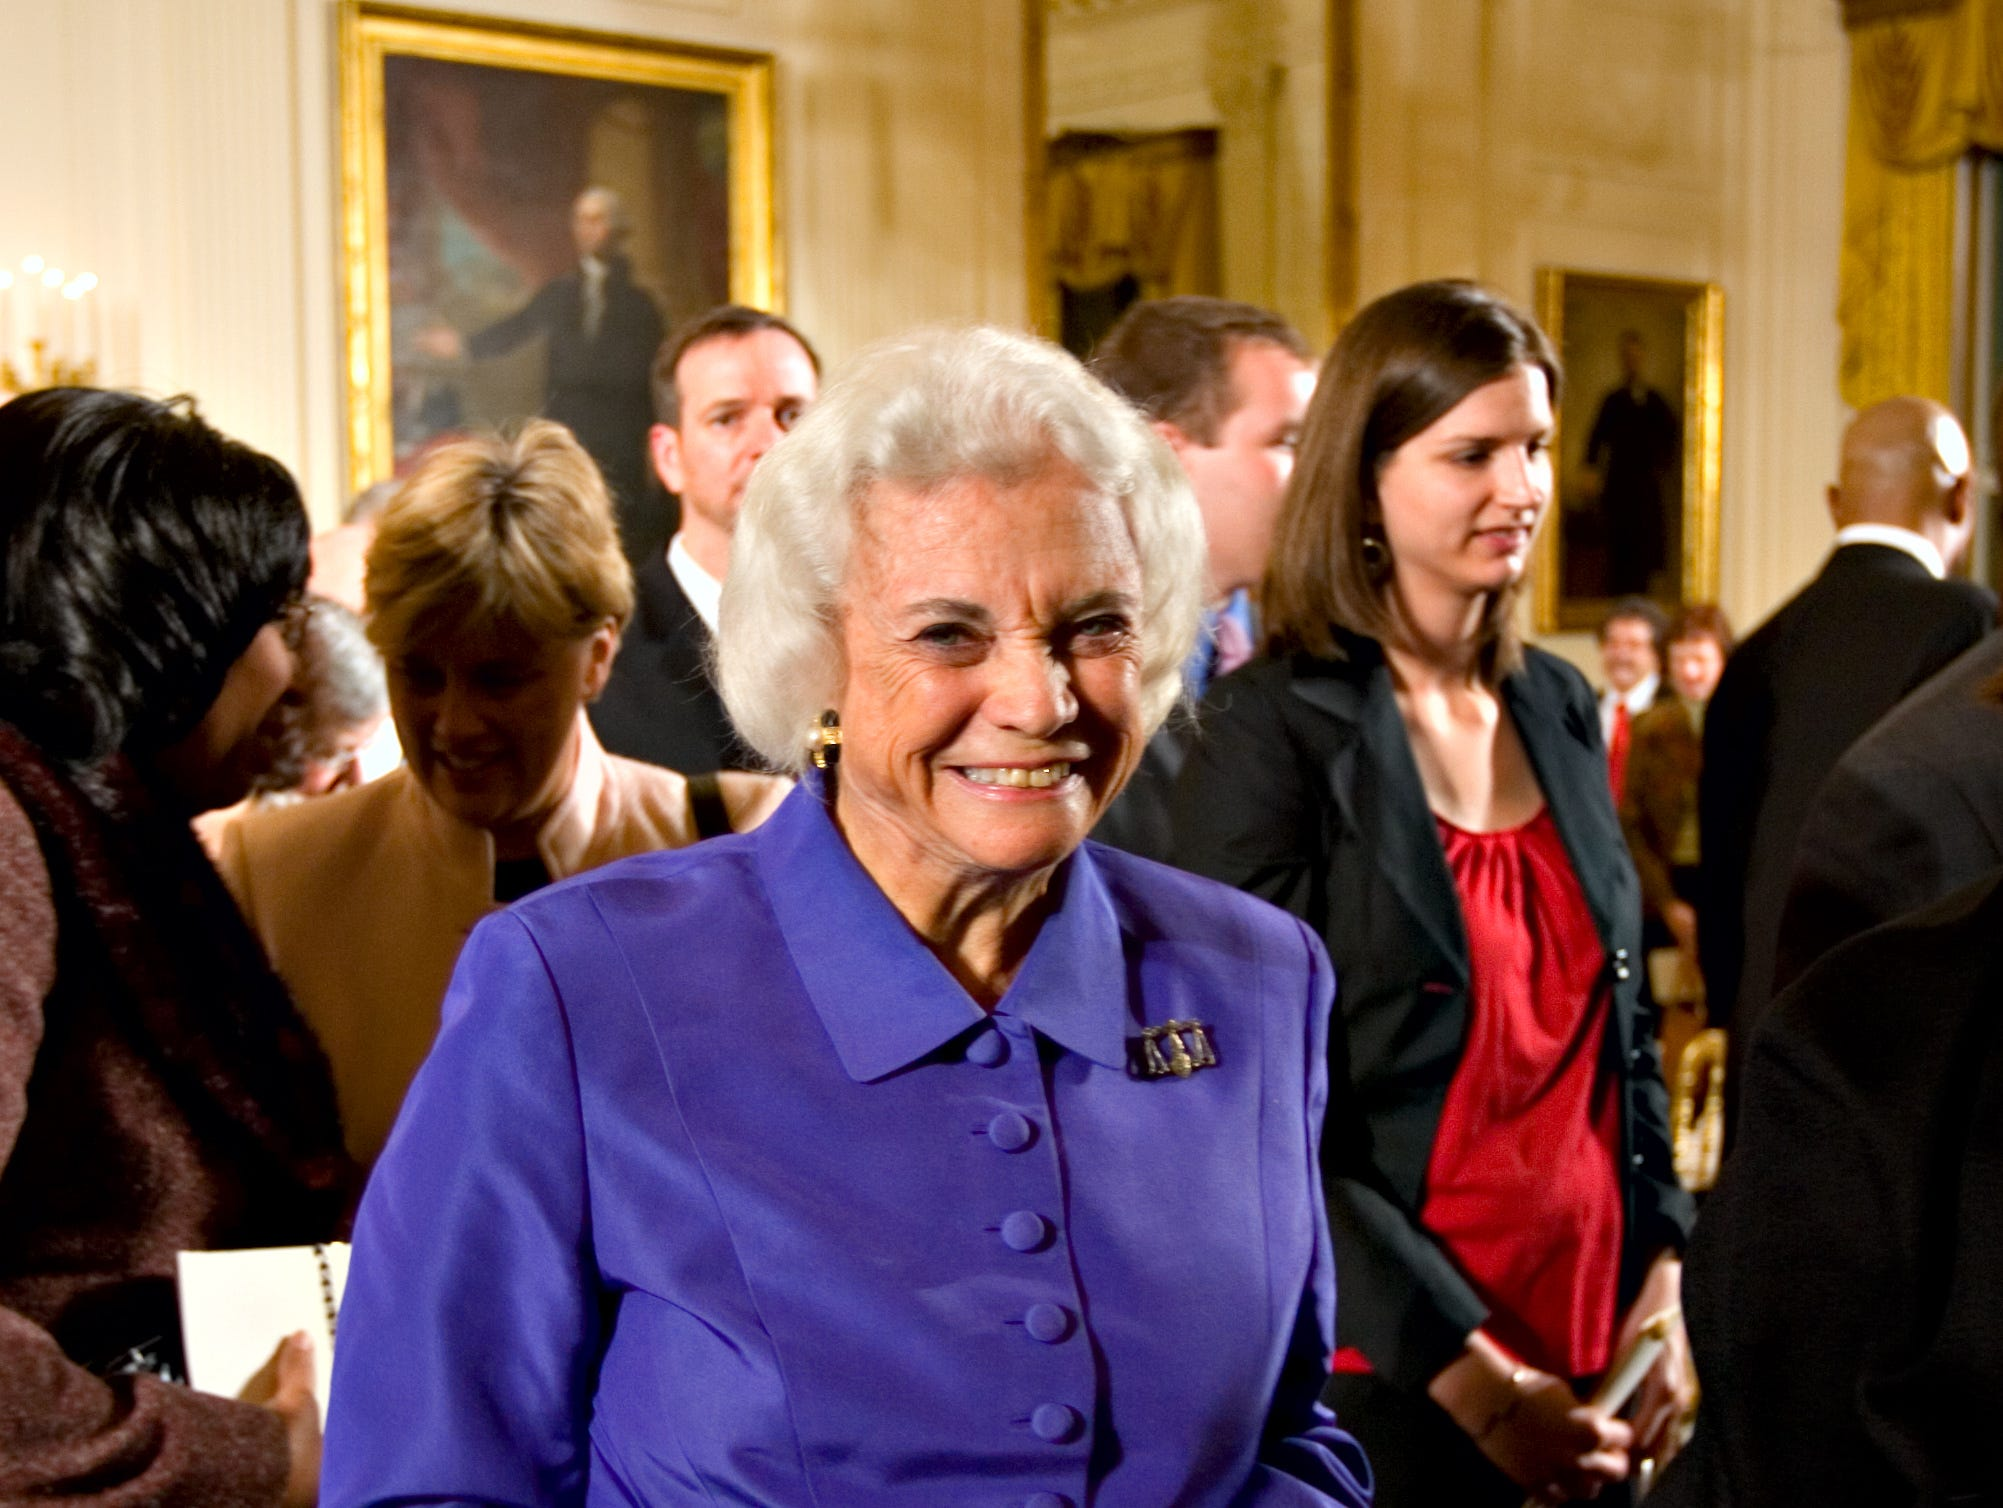 Retired U.S. Supreme Court Justice Sandra Day O'Connor smiles as she leaves a ceremony in the East Room of the White House honoring Abraham Lincoln's 199th birthday, in Washington, Sunday, Feb. 10, 2008. Justice O'Connor received The Lincoln Medal, which recognizes accomplishments that exemplify the character and legacy of Lincoln.